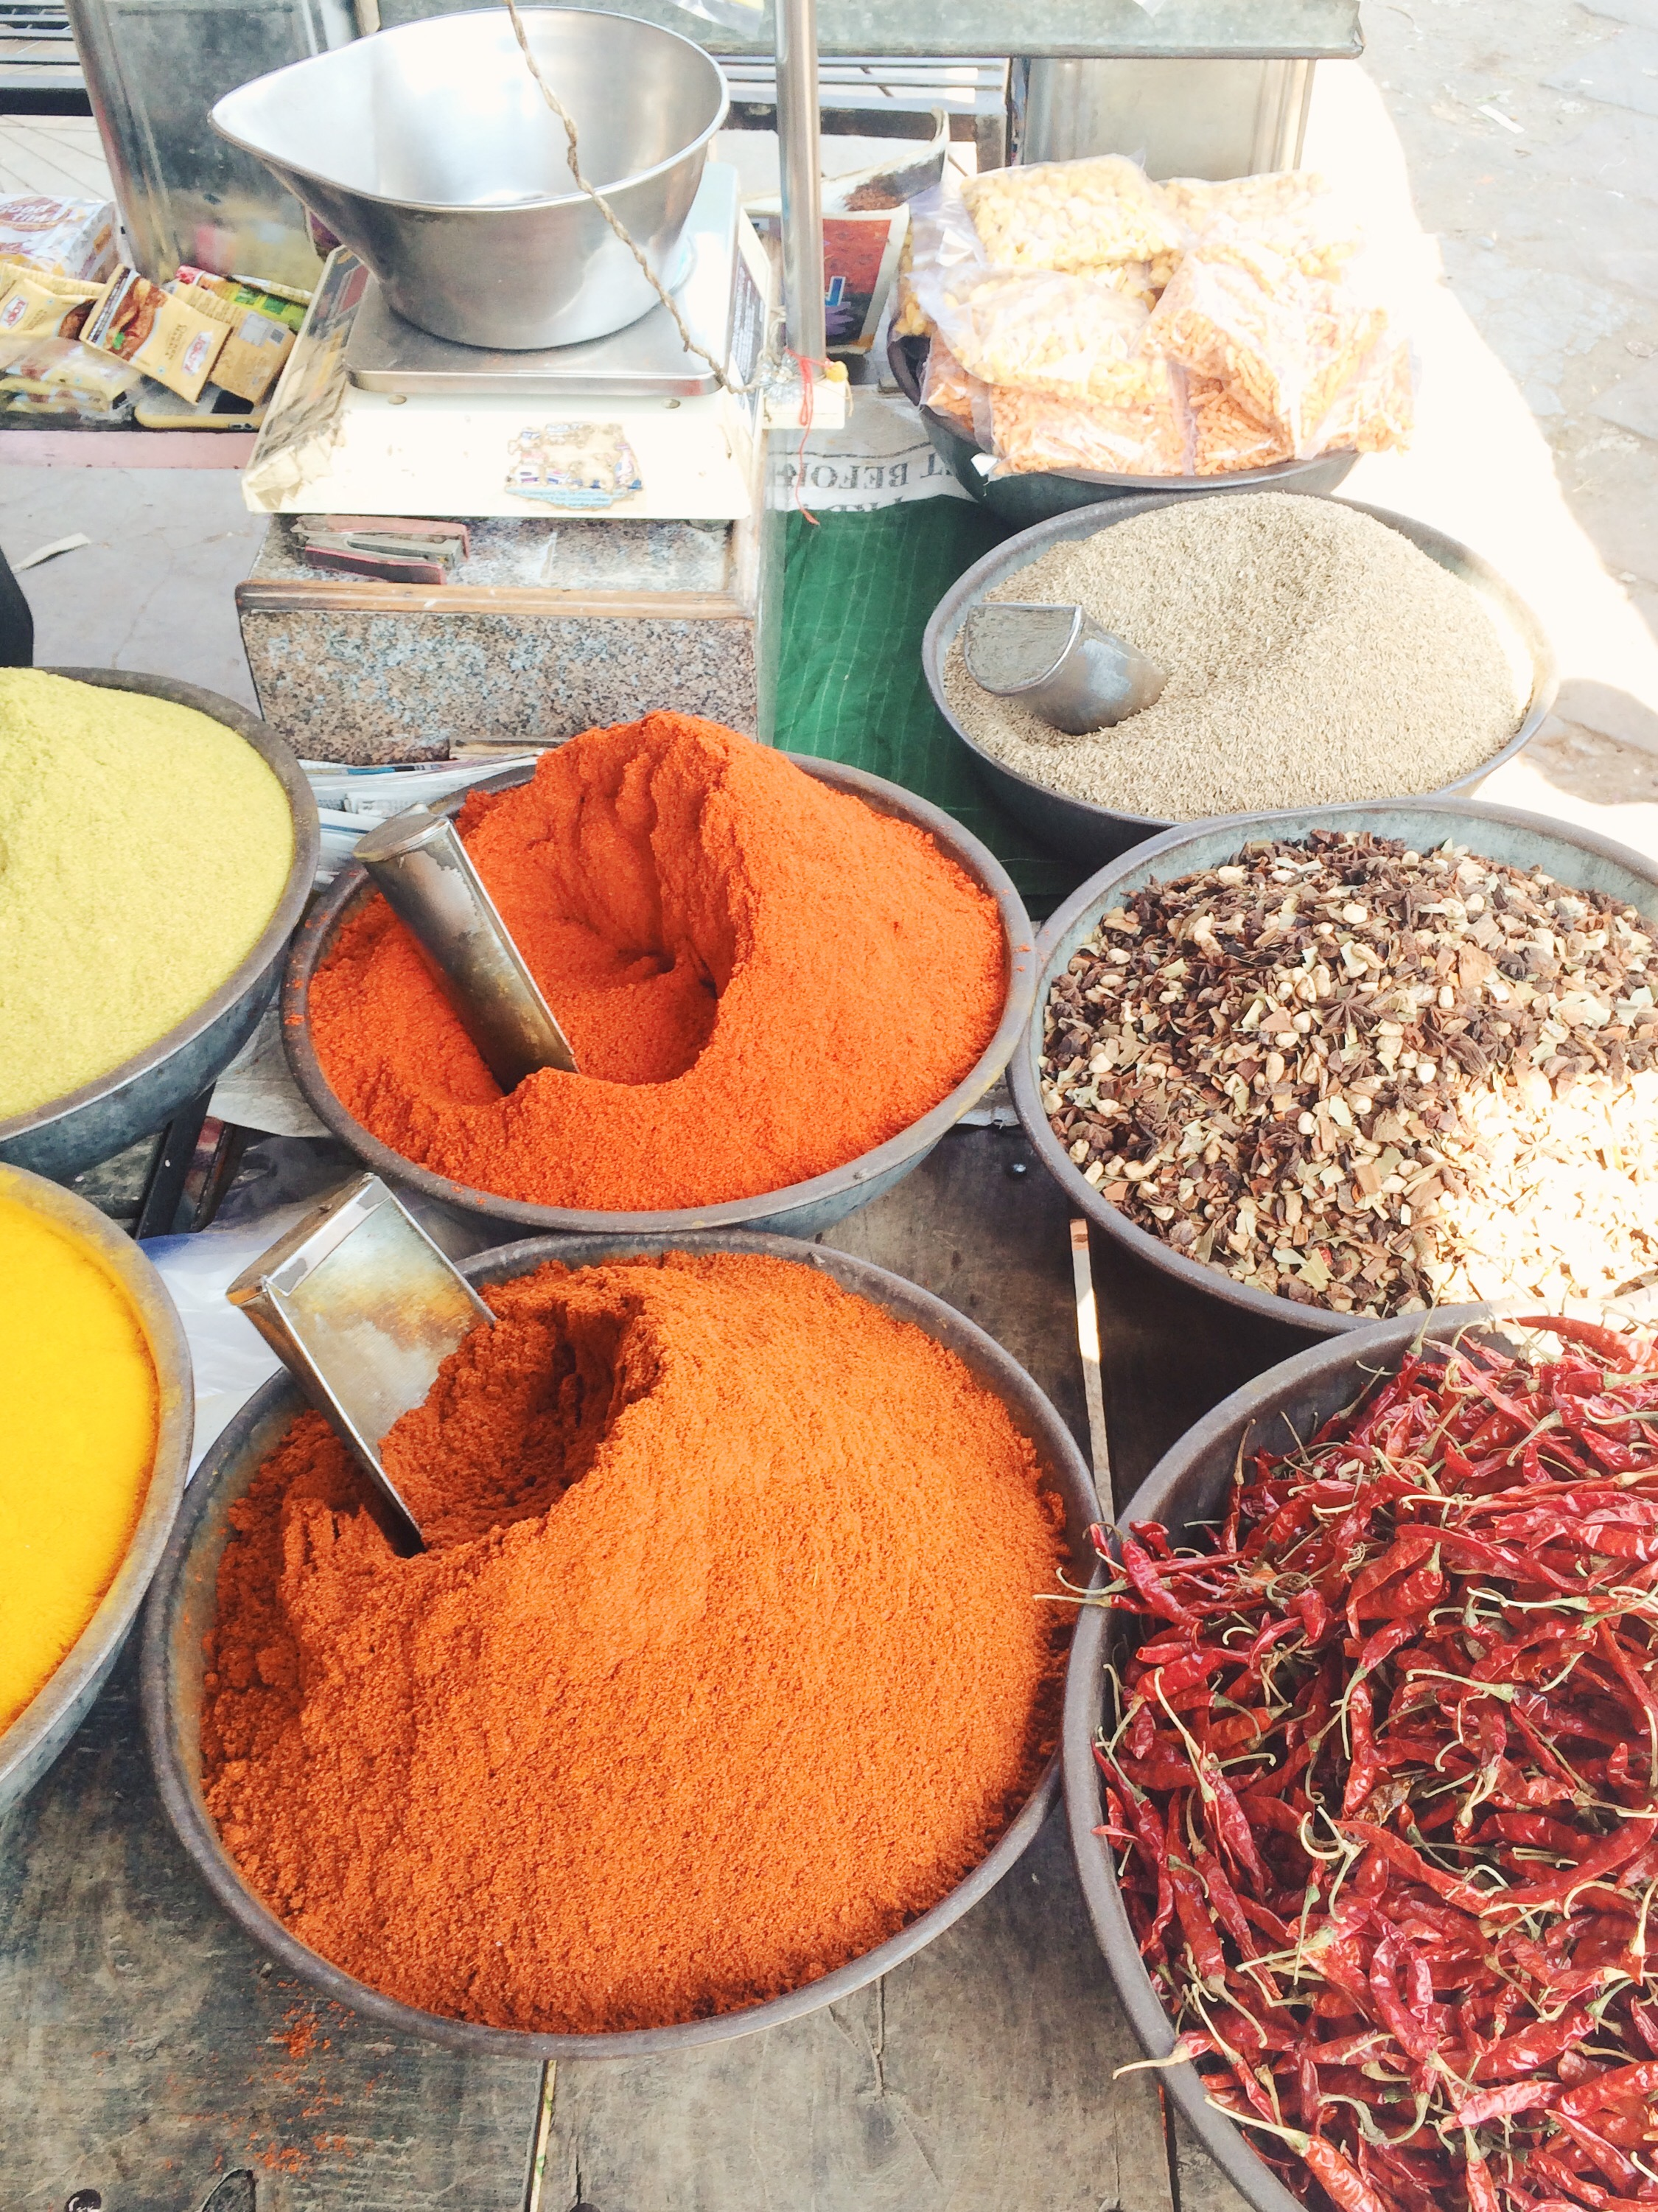 and spices in India